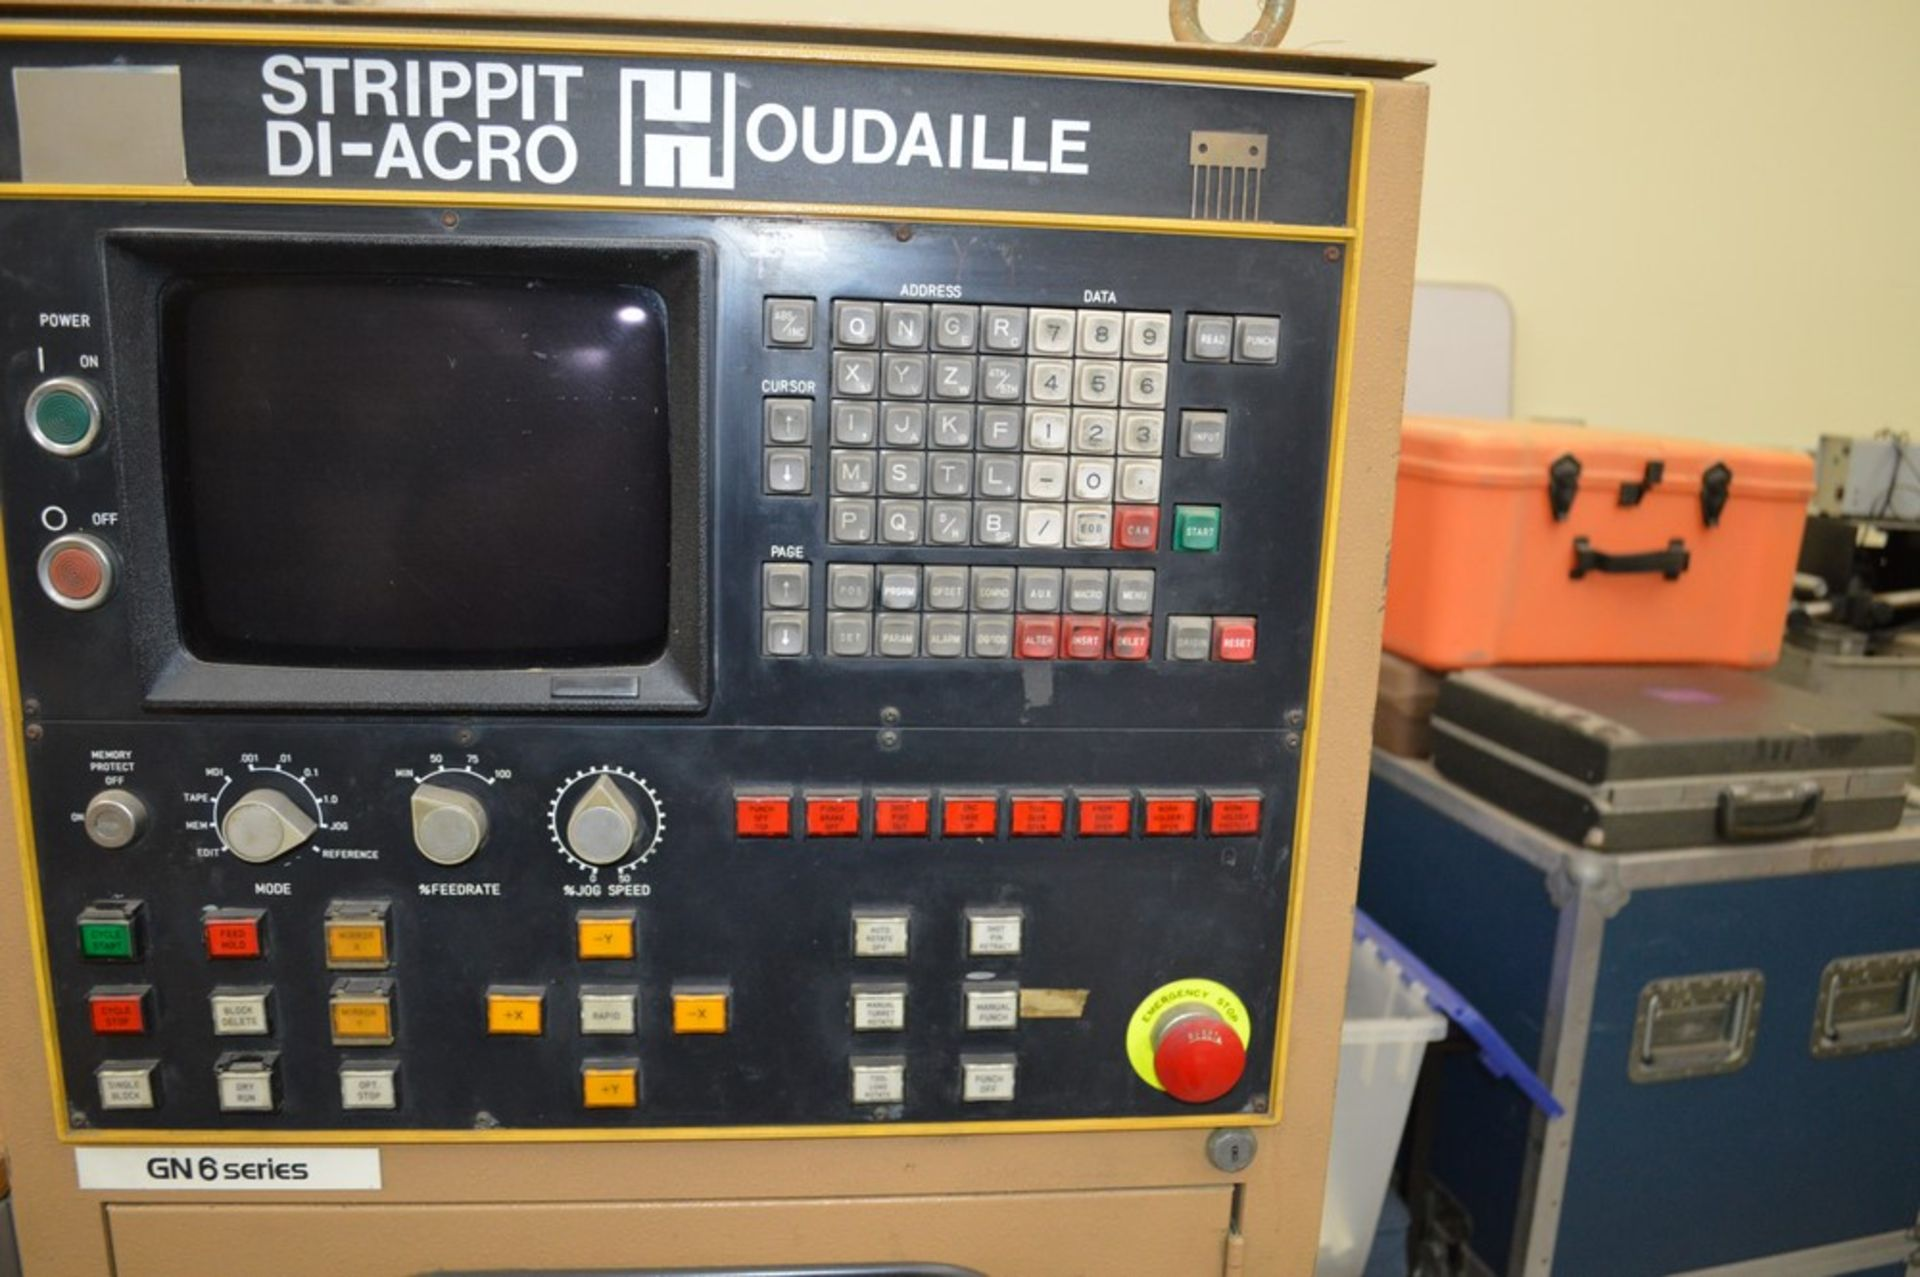 1985 Del Arco Strippit 1000 lbs punch, with auxilliary transfer table, 20 stations, blue 4 leg - Image 15 of 15